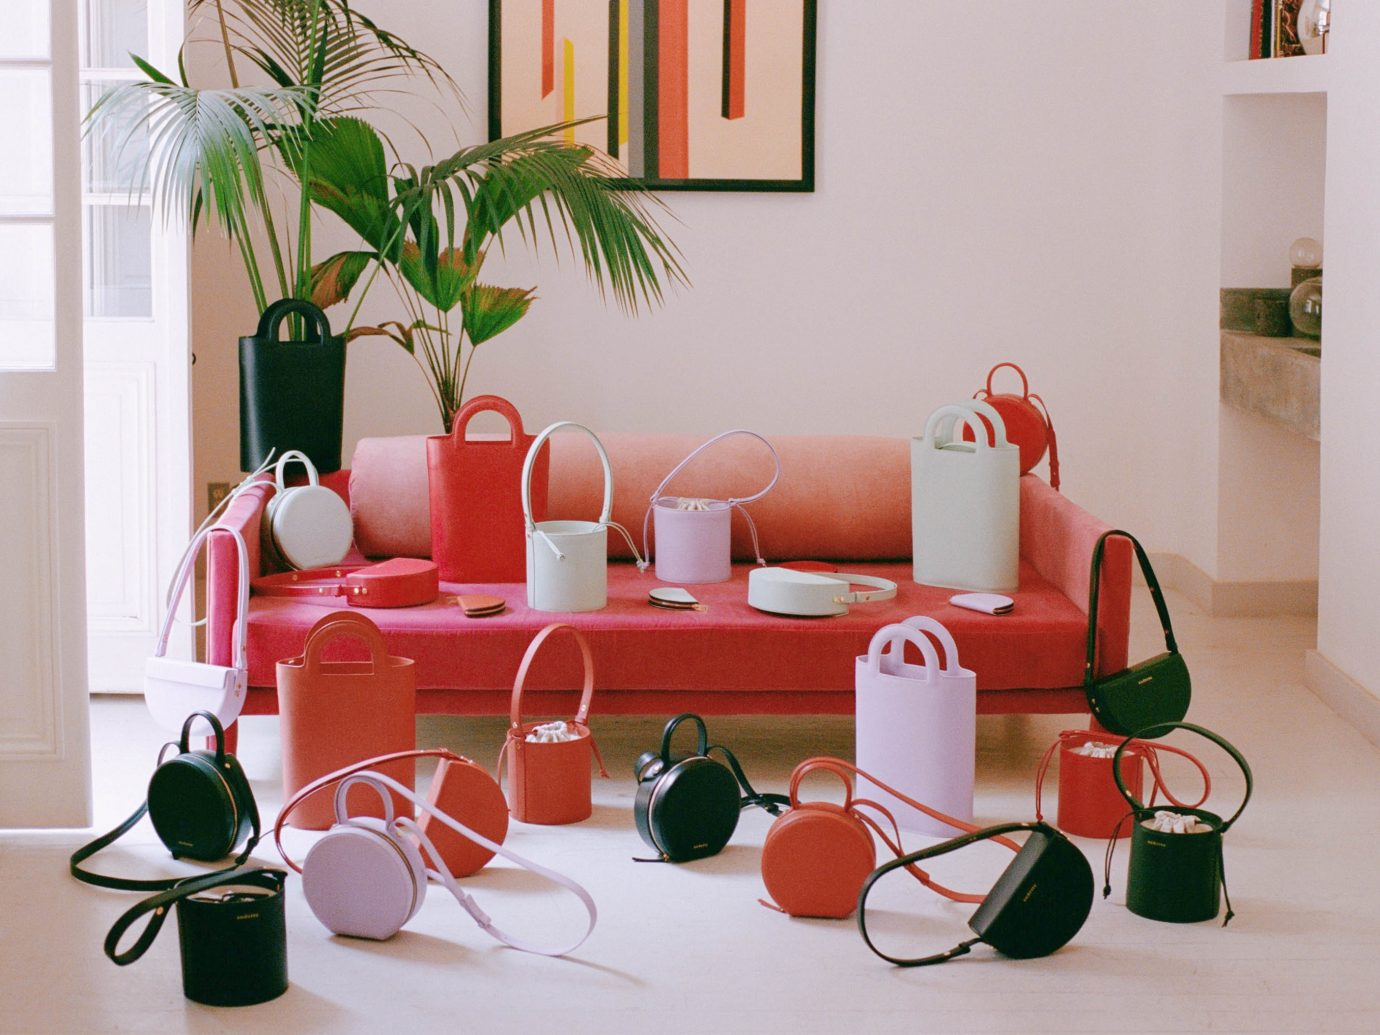 Beautiful assorted leather purses and wallets on a red couch in a white interior space from Audette